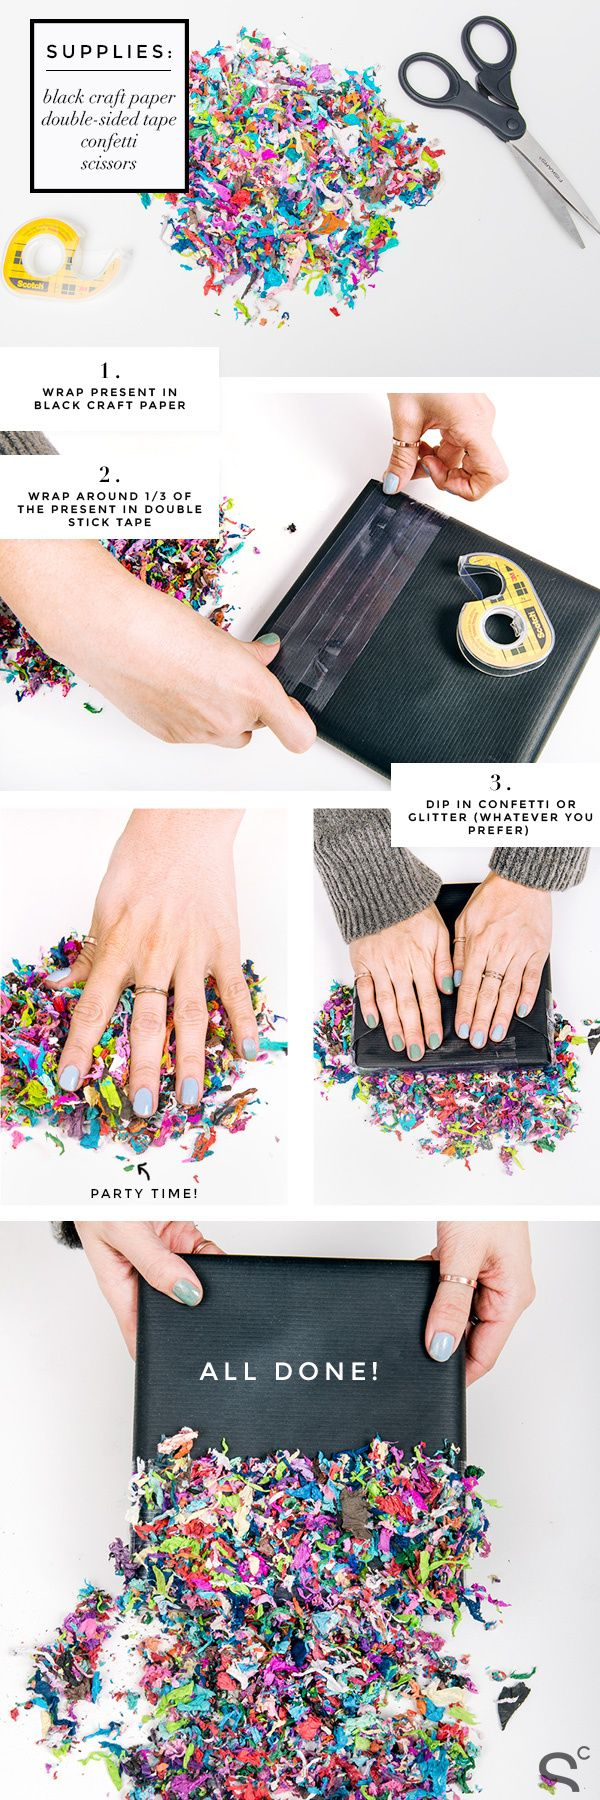 DIY Confetti Dipped Presents: Our Step-By-Step Guide   StyleCaster